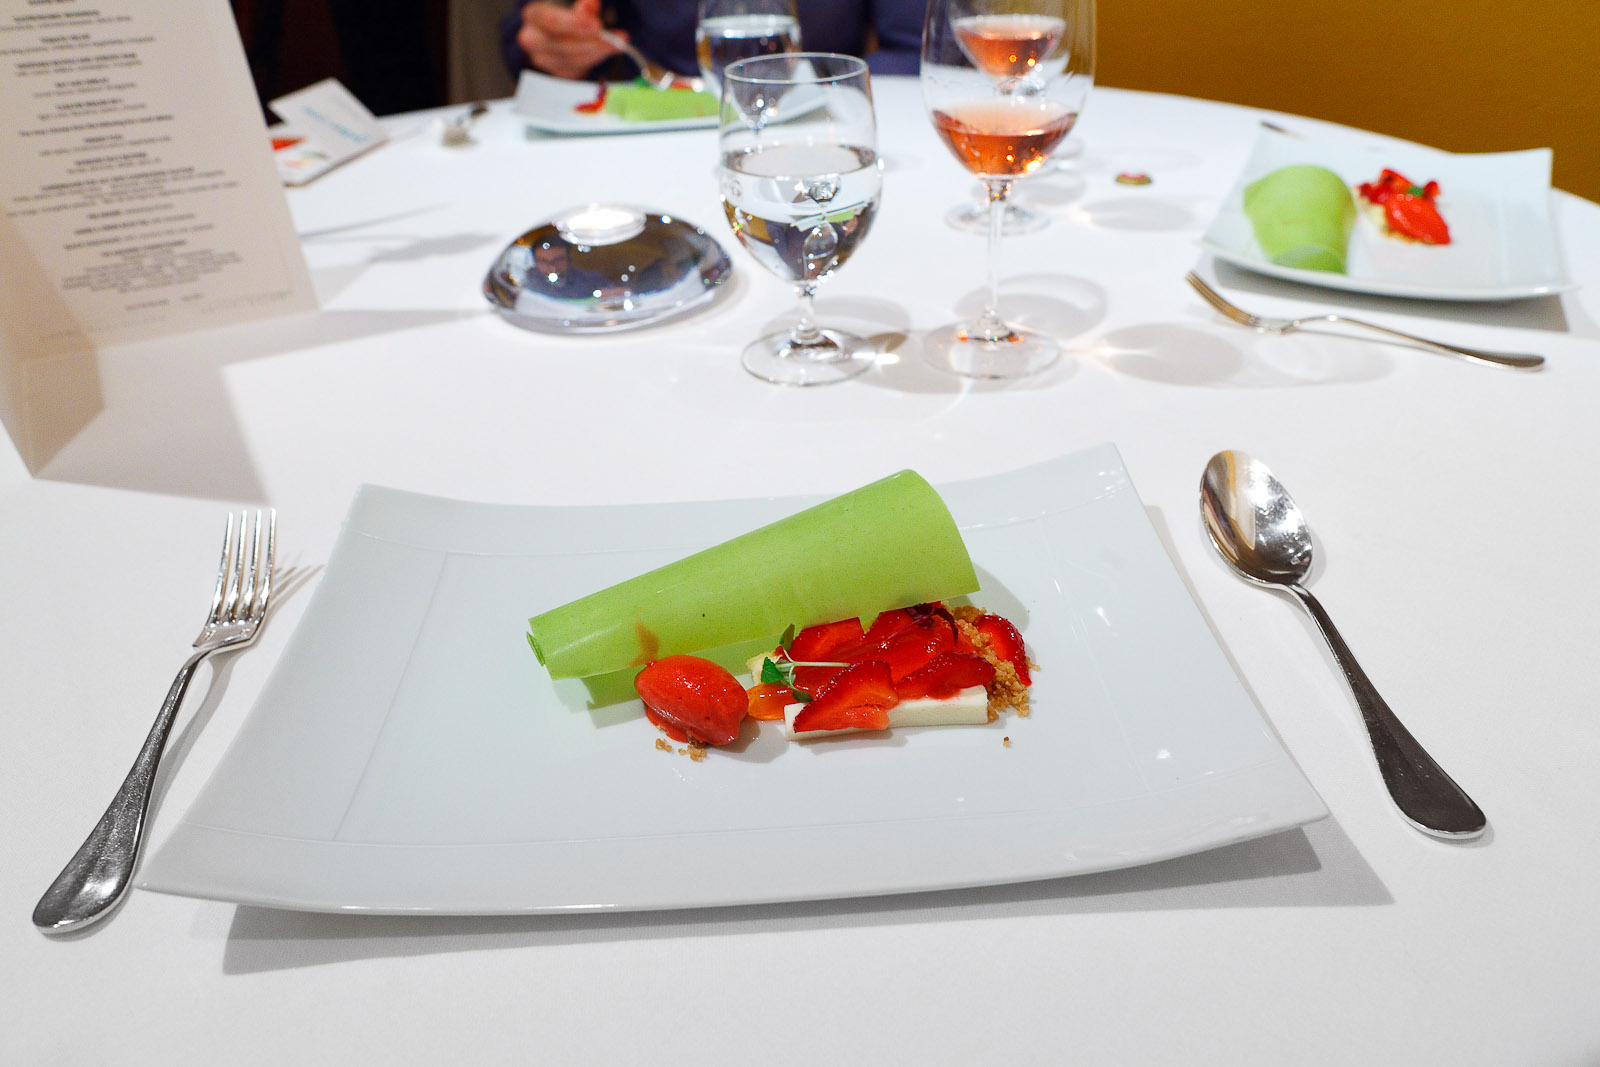 9th Course: Under a green roof tile, with strawberries